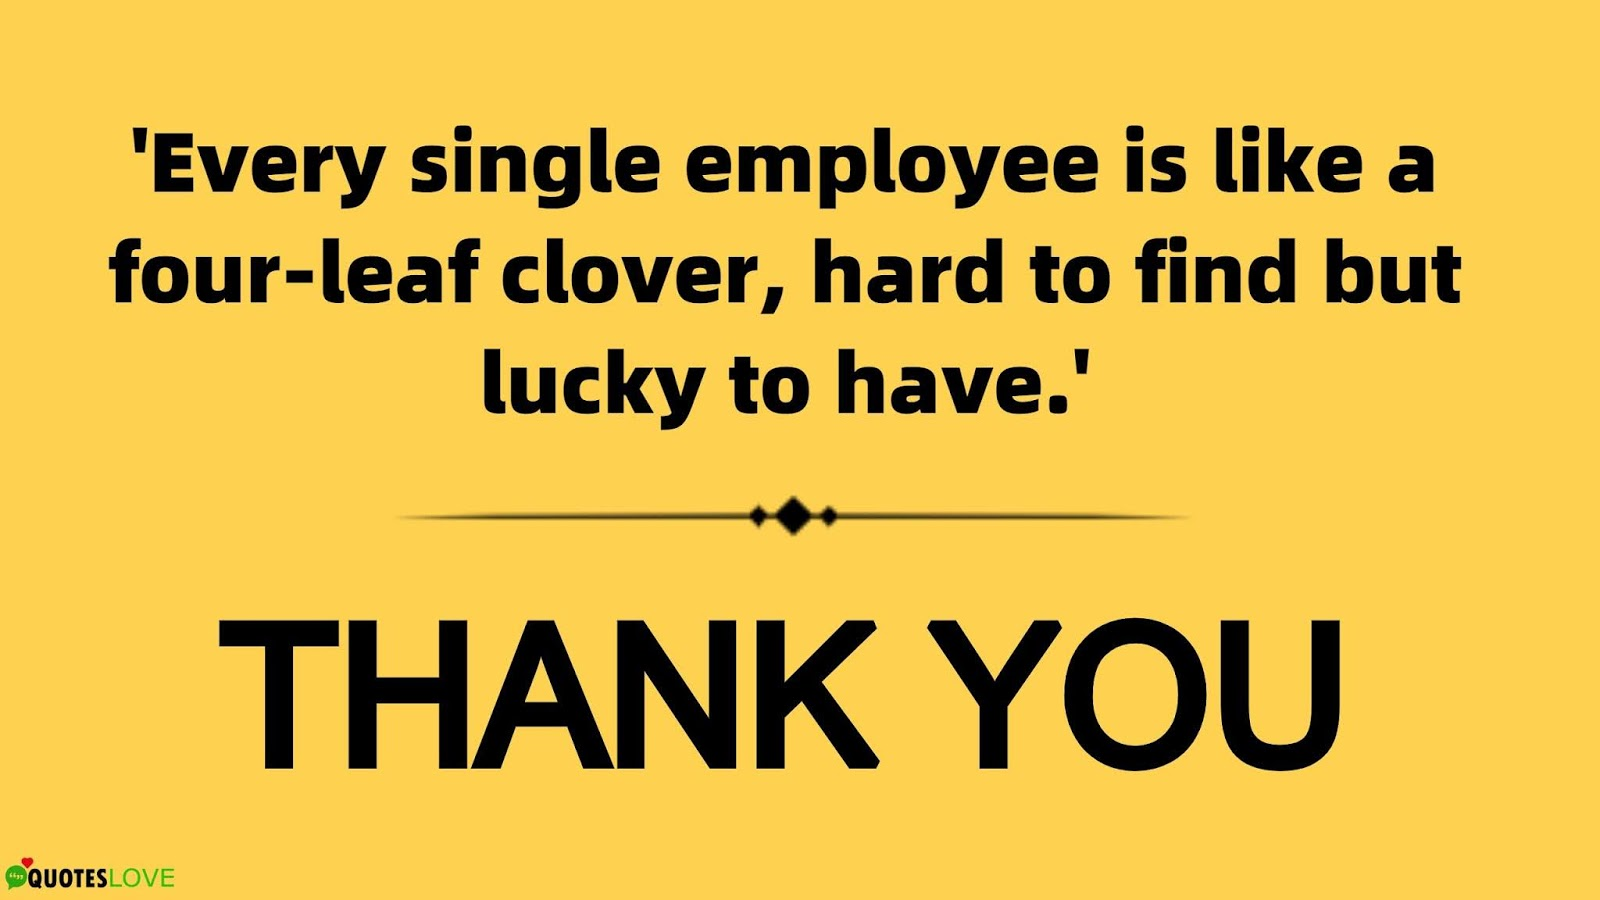 Employee Appreciation Day Quotes, Ideas, Banner, Thank You, Poster, Message, Images